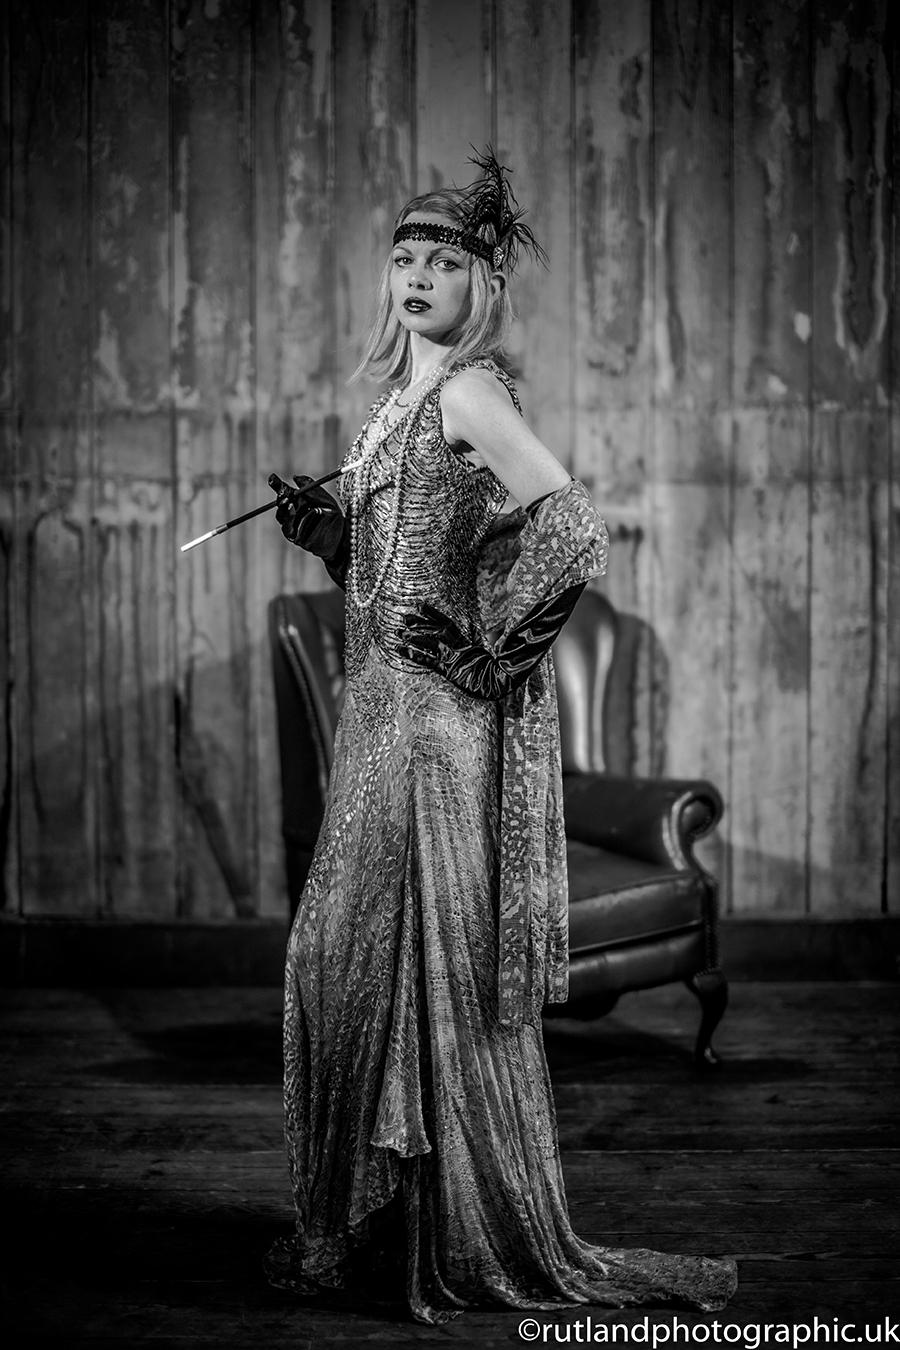 In Stately Decay / Photography by Rutland Photographic, Taken at The Pit Studio UK, Assisted by The Creative Duo / Uploaded 13th February 2016 @ 11:47 AM